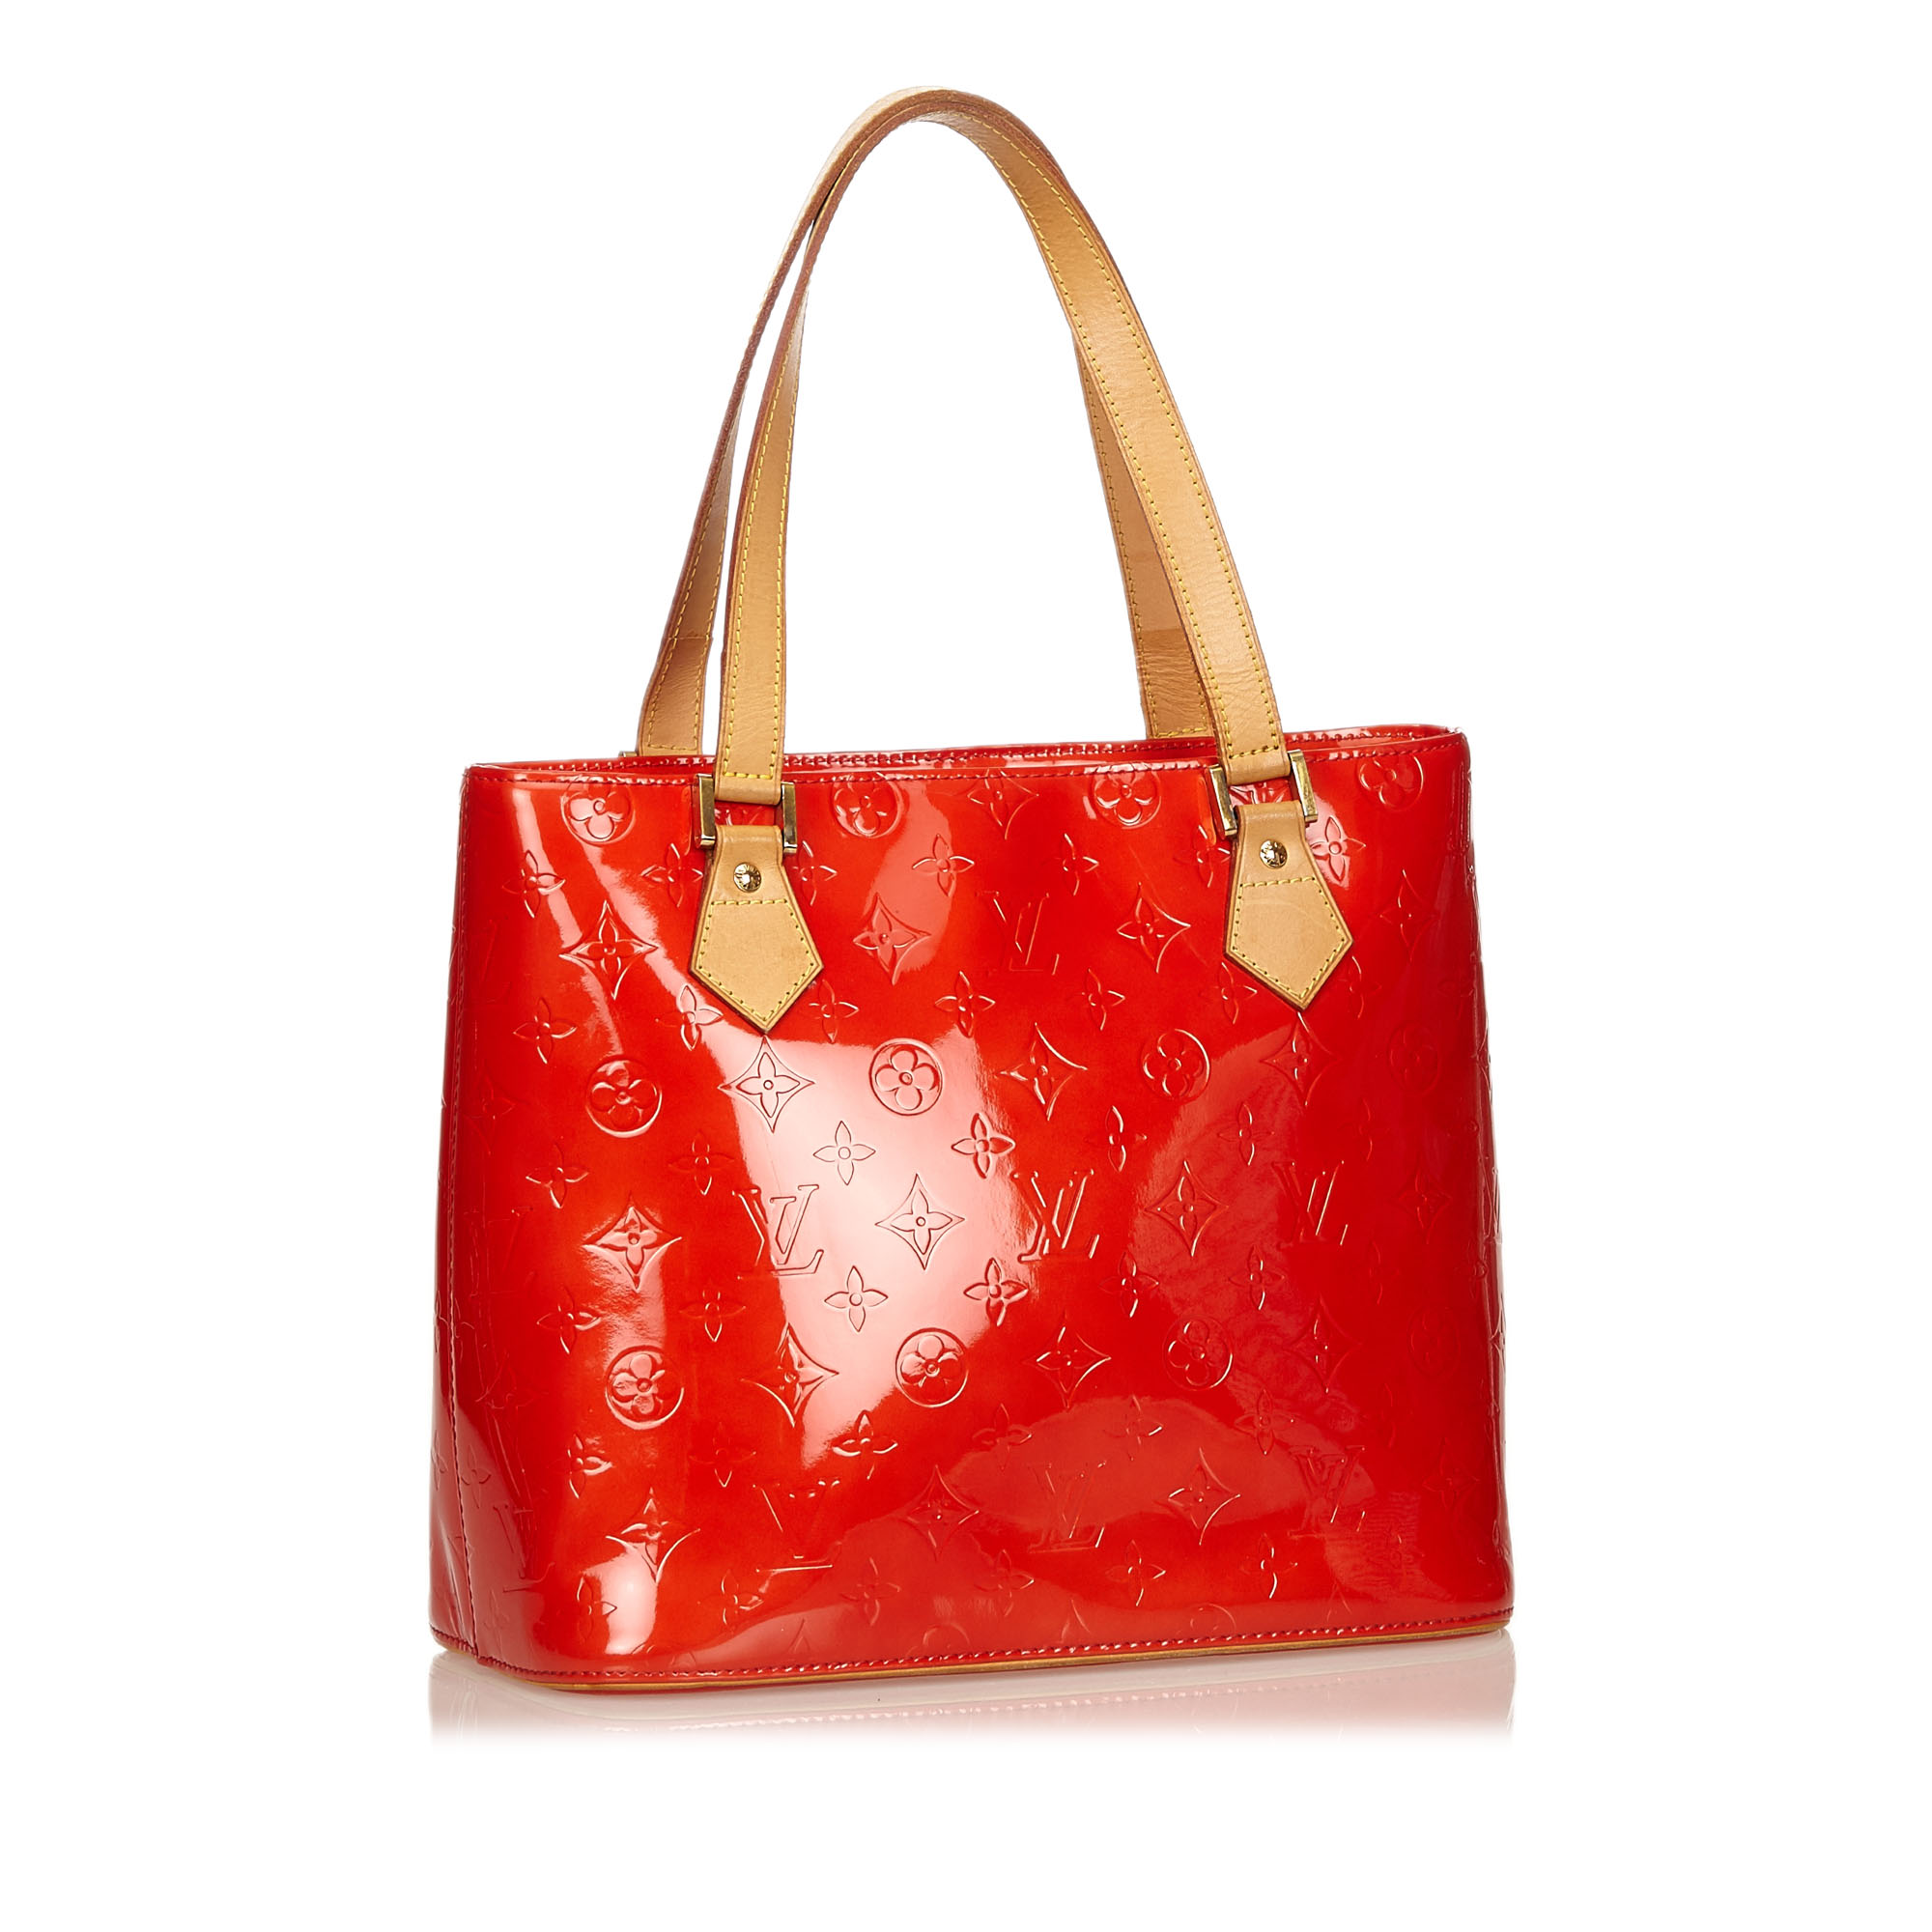 Louis Vuitton Red Monogram Vernis Houston Tote